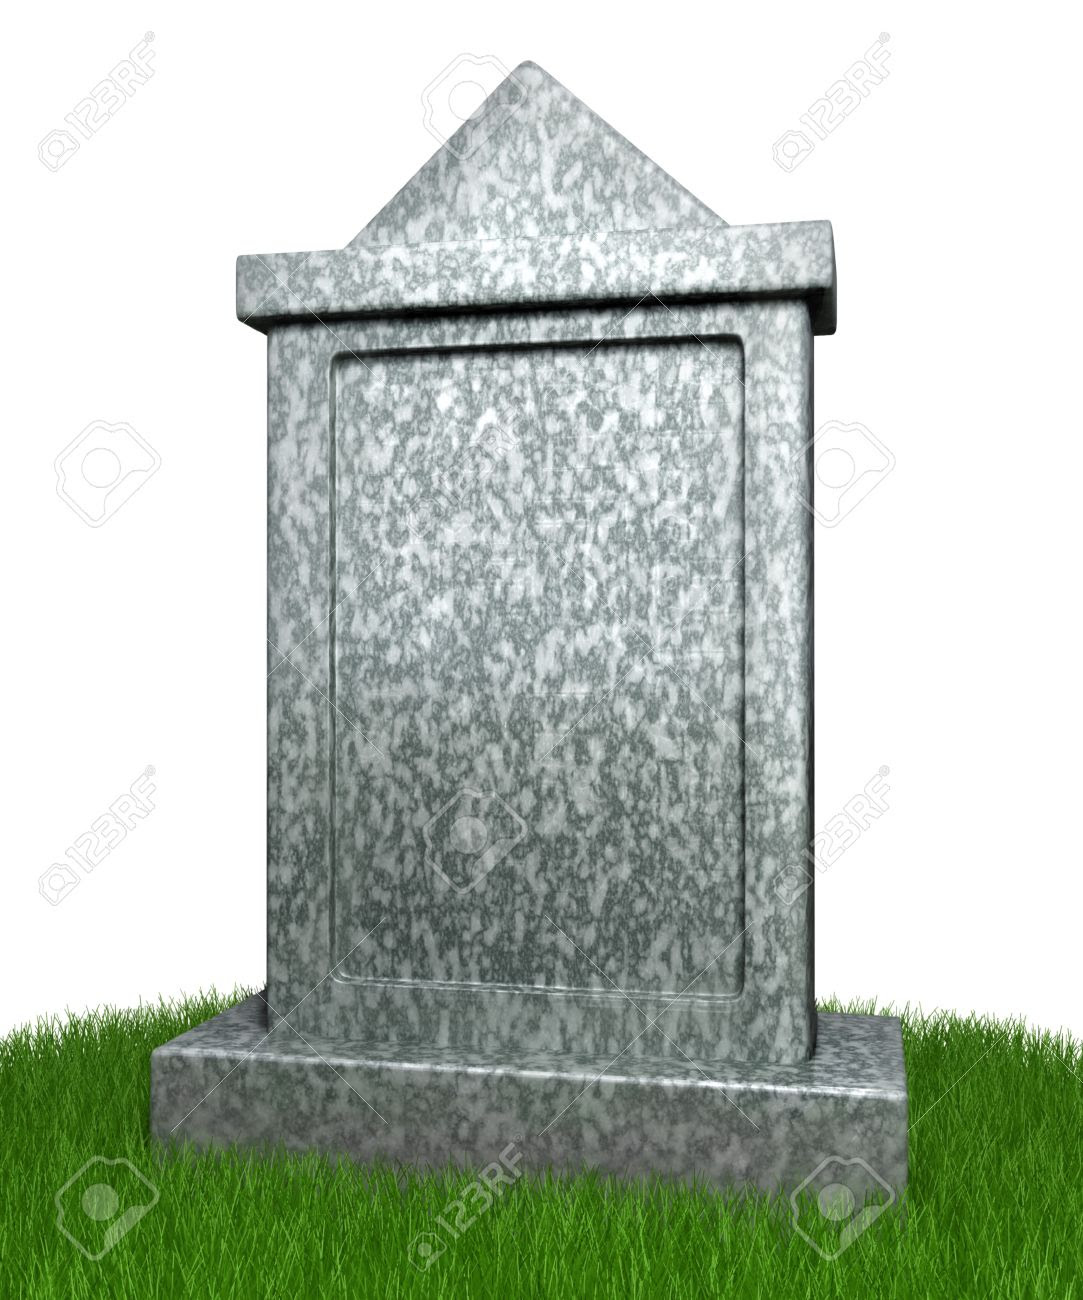 Blank Gravestone With Grass Stock Photo, Picture And Royalty Free ...